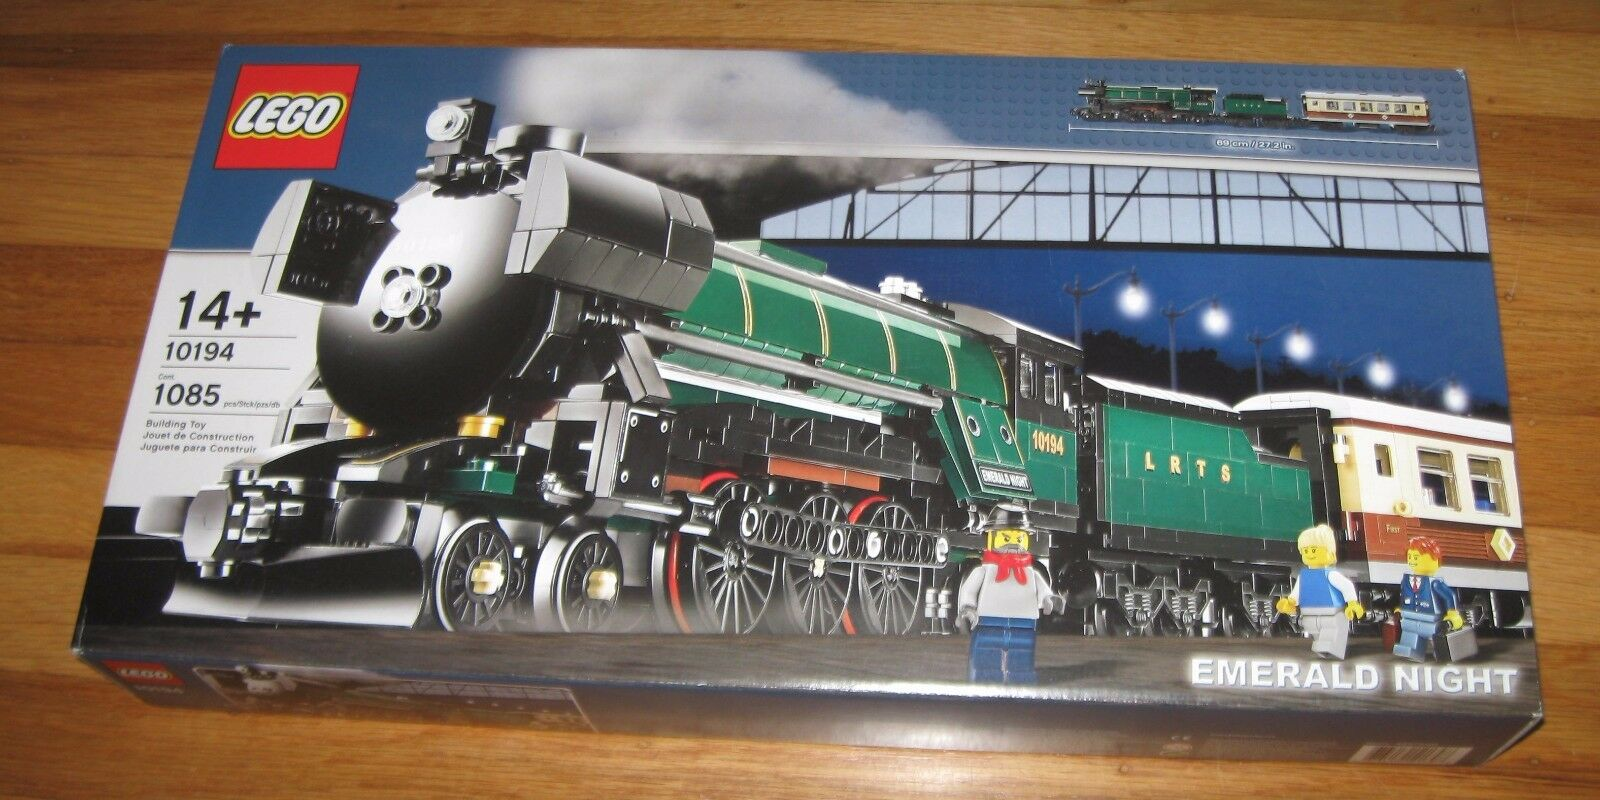 LEGO NY SEALD 10194 Emerald Night Train Set Skapare Motor Tender bil Pensionerad